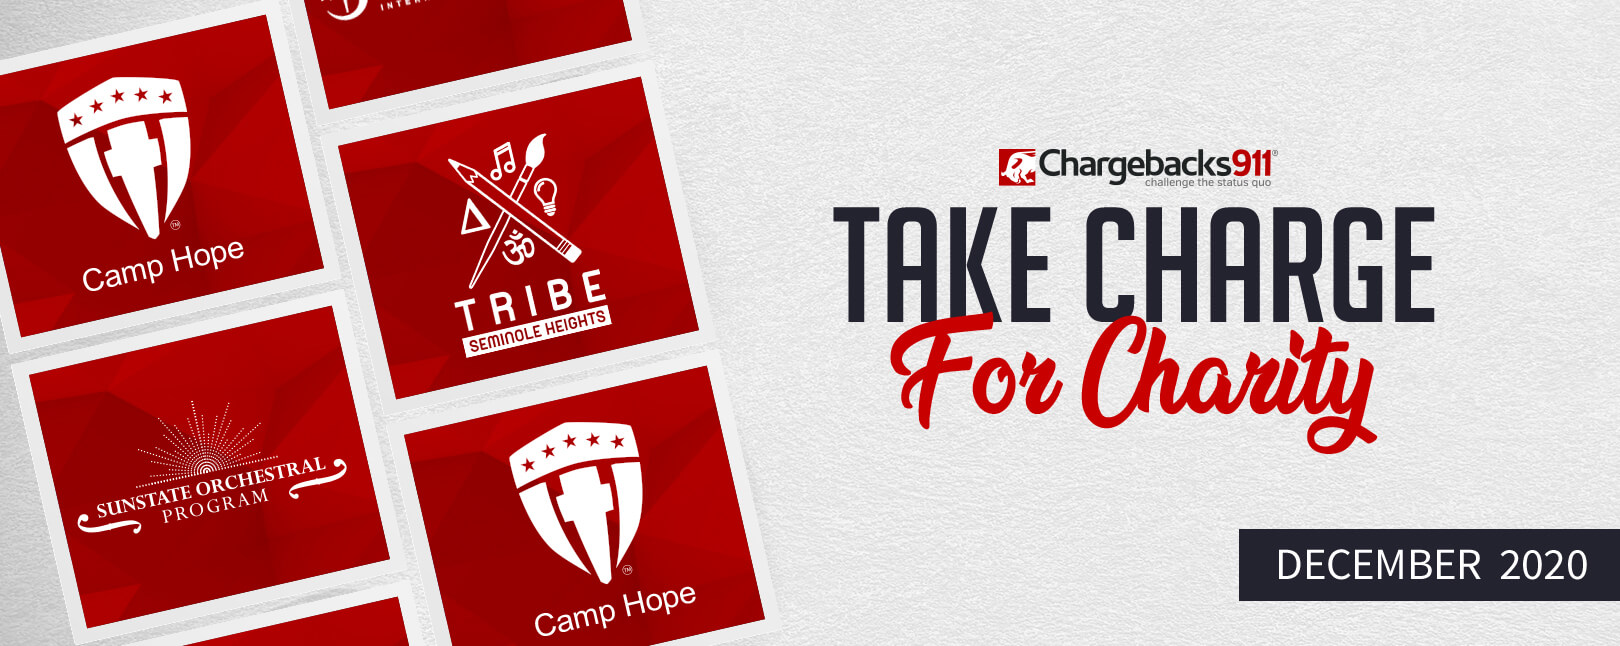 Take Charge for Charity – December 2020